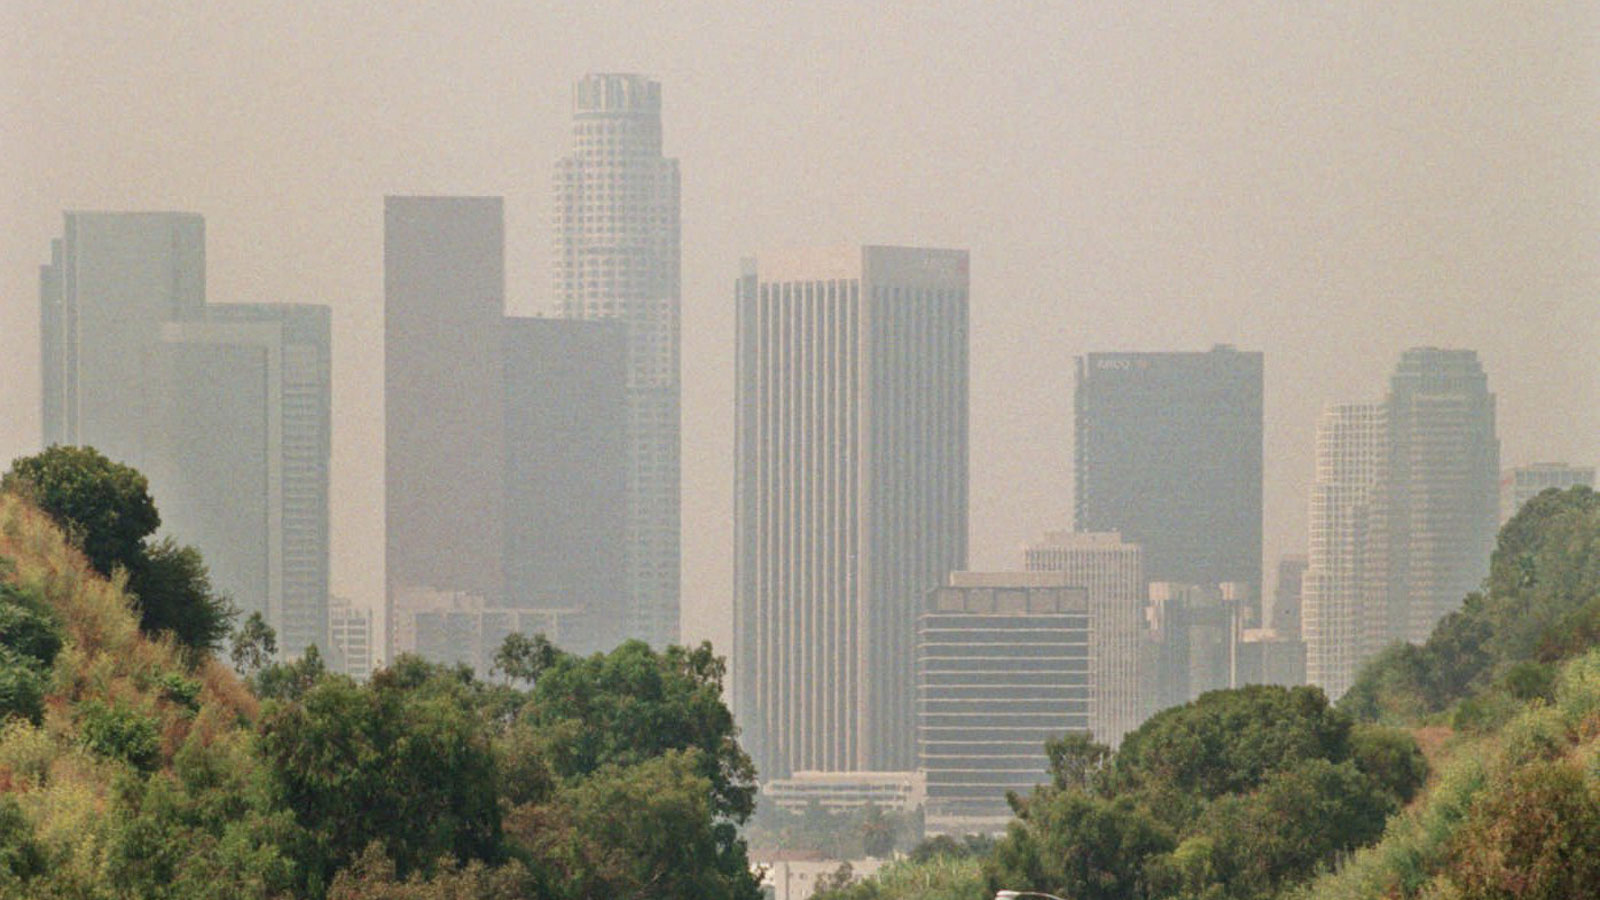 Covid 19 Death Rate Rises In Counties With High Air Pollution Study Says